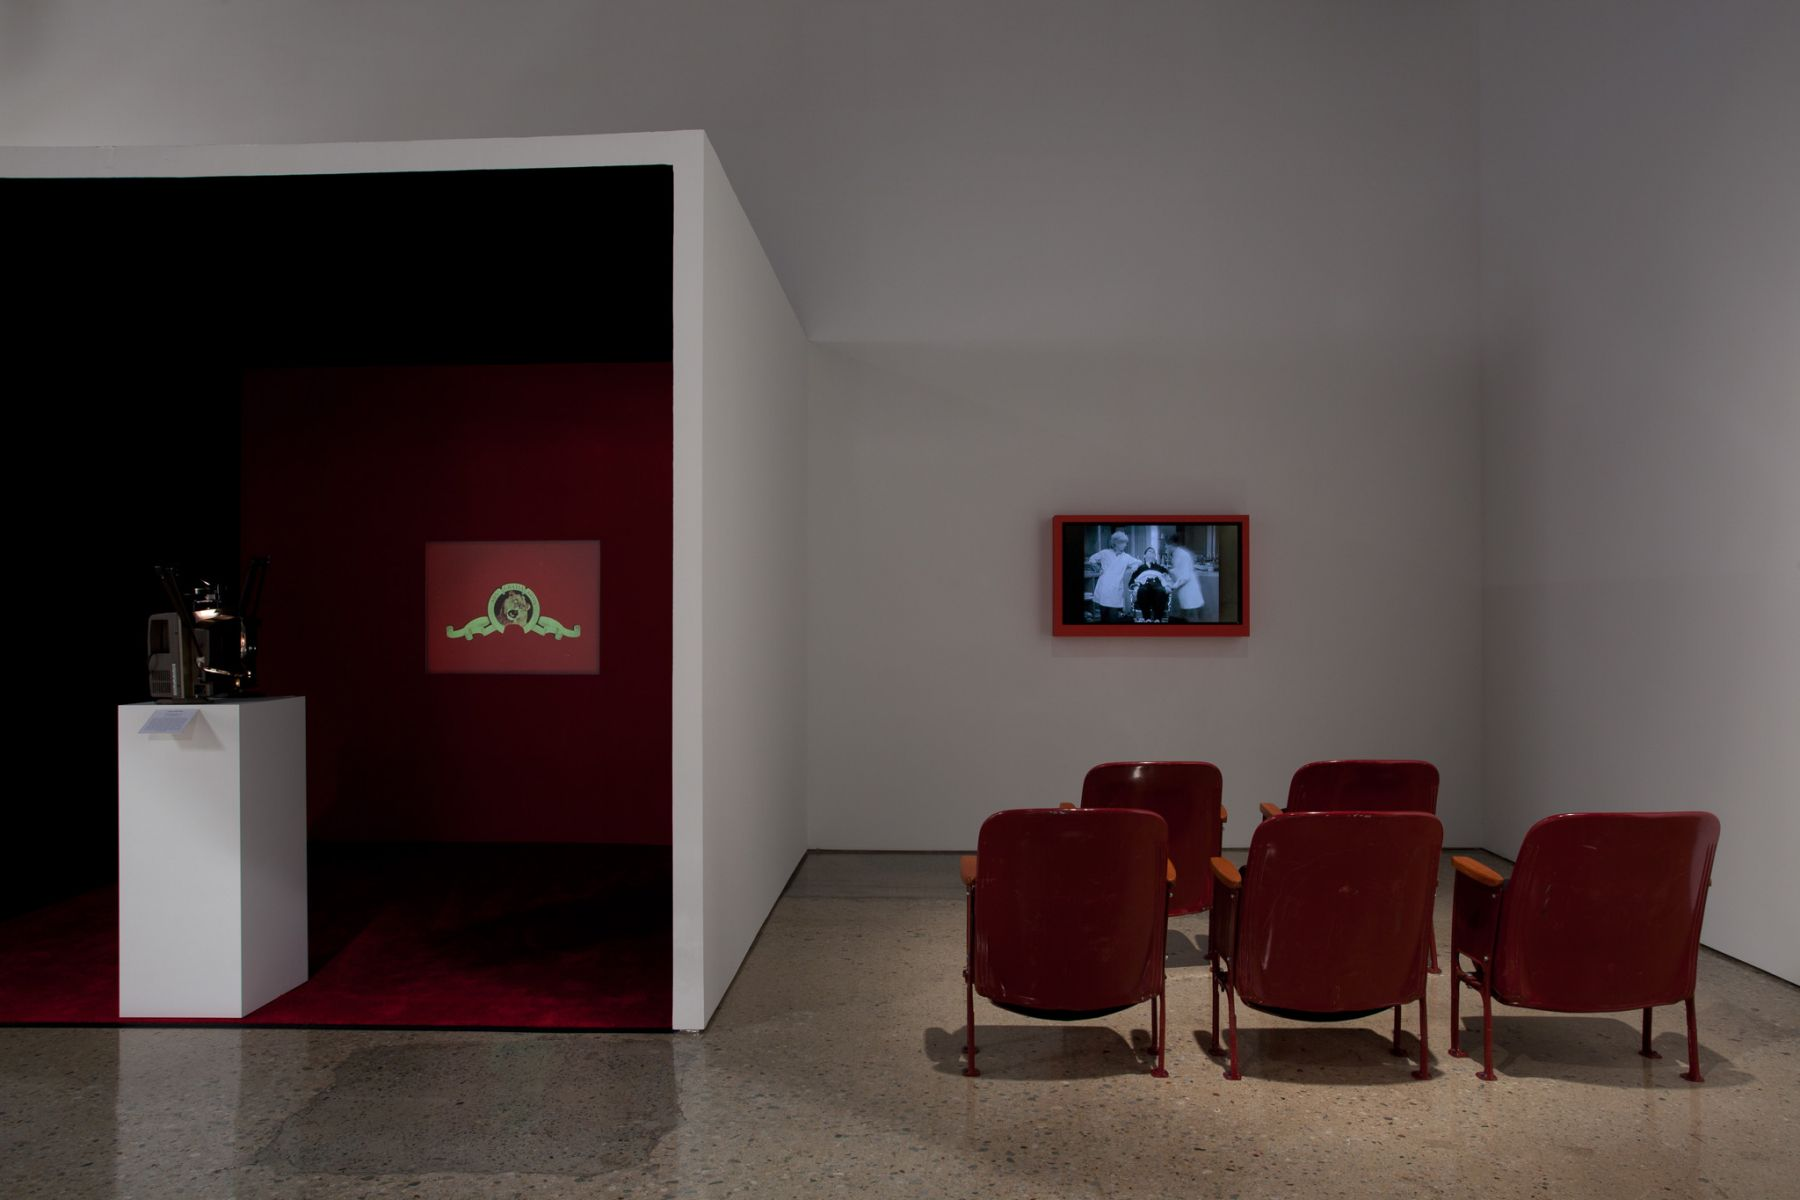 Marxism, Installation at 303 Gallery, 2012